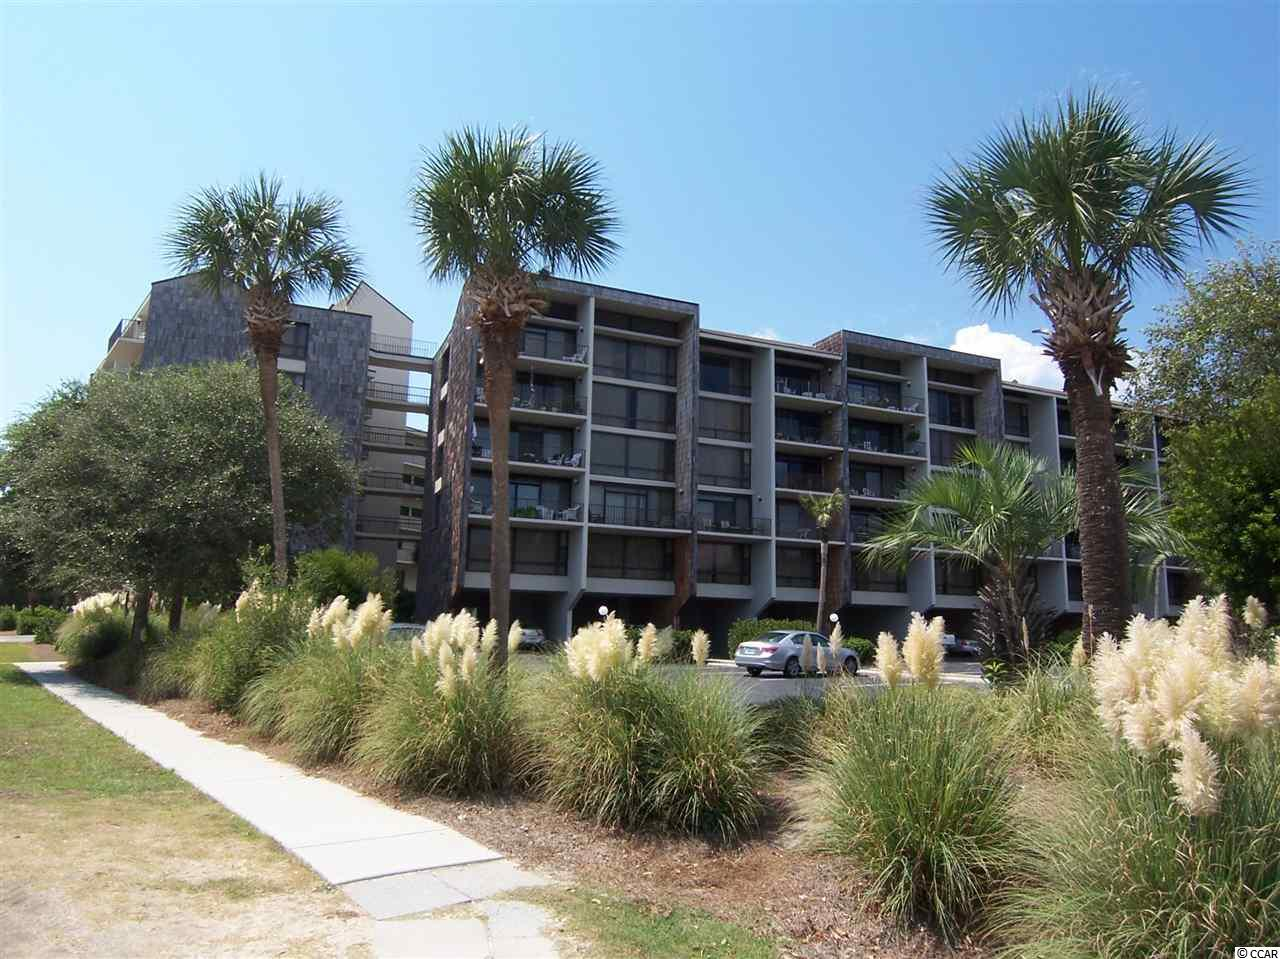 Condo / Townhome / Villa for Sale at 423 Parker Dr, #607 423 Parker Dr, #607 Pawleys Island, South Carolina 29585 United States